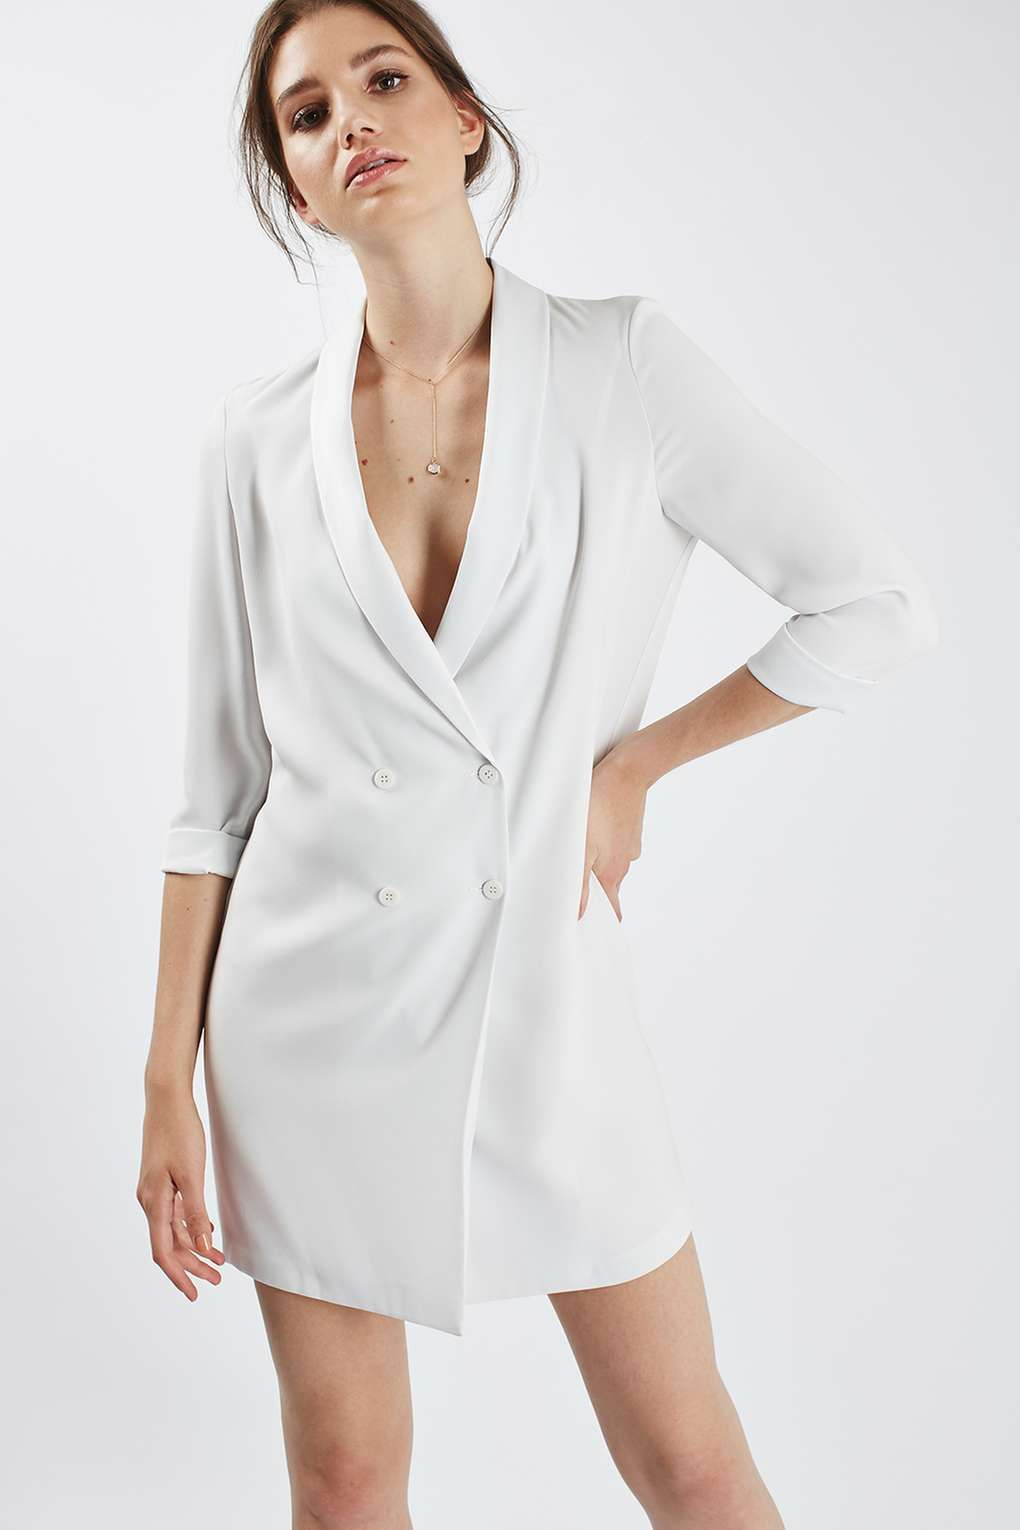 Soft Tailored Blazer Dress | Blazer dress, Blazers and Topshop